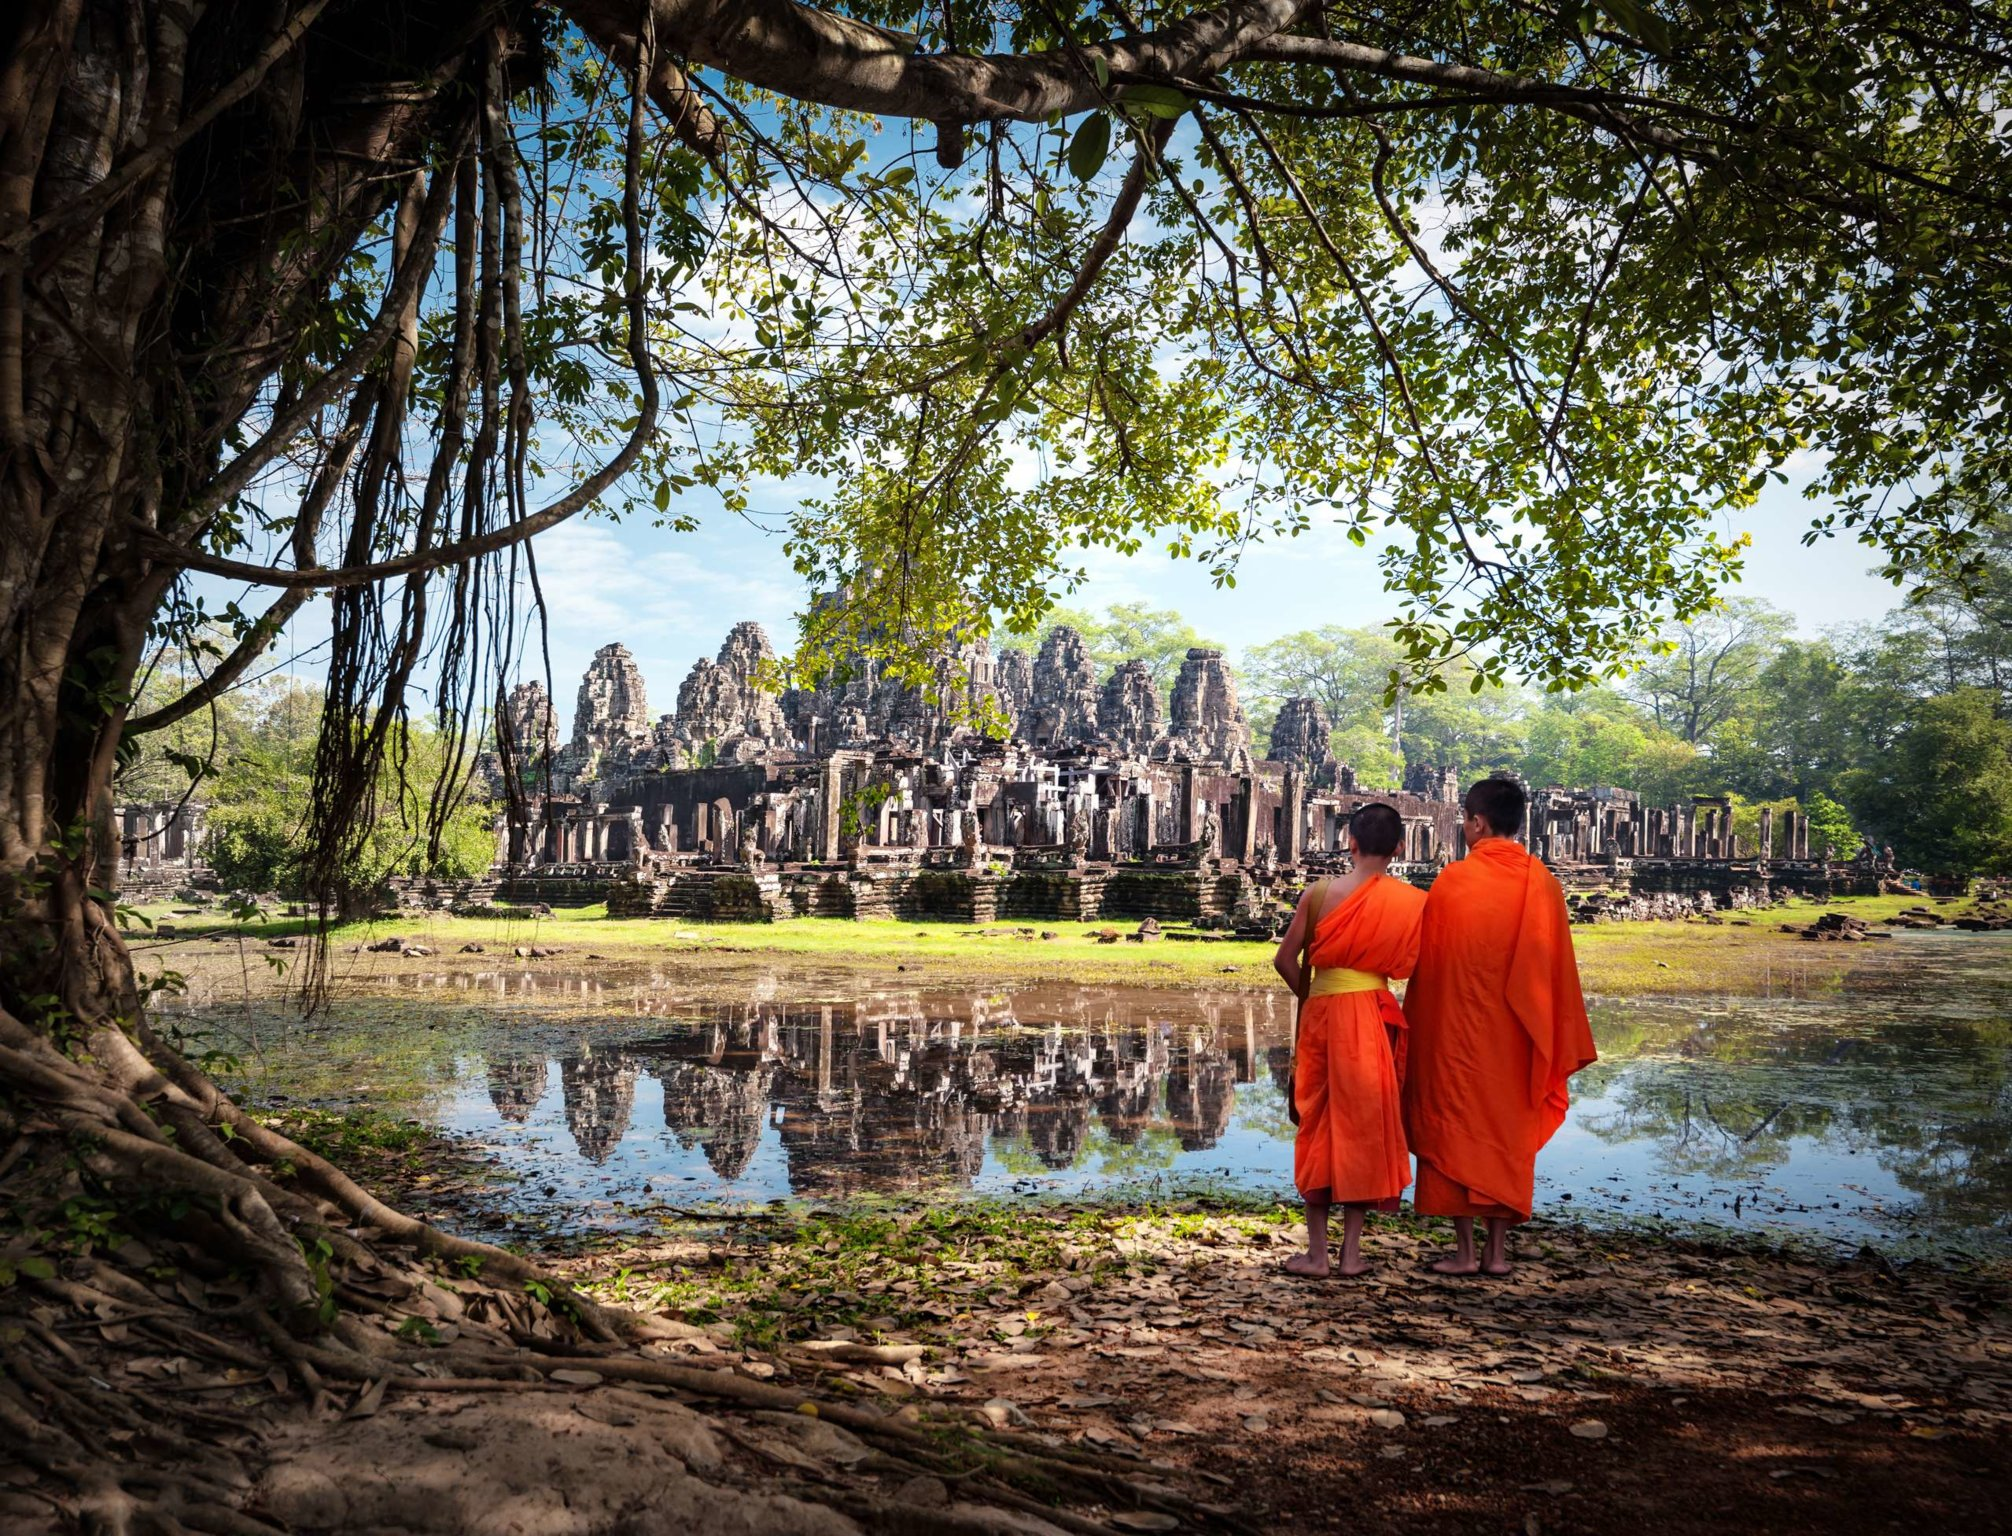 11-Day Vietnam and Cambodia Highlights - Vietnam and Cambodia Itinerary